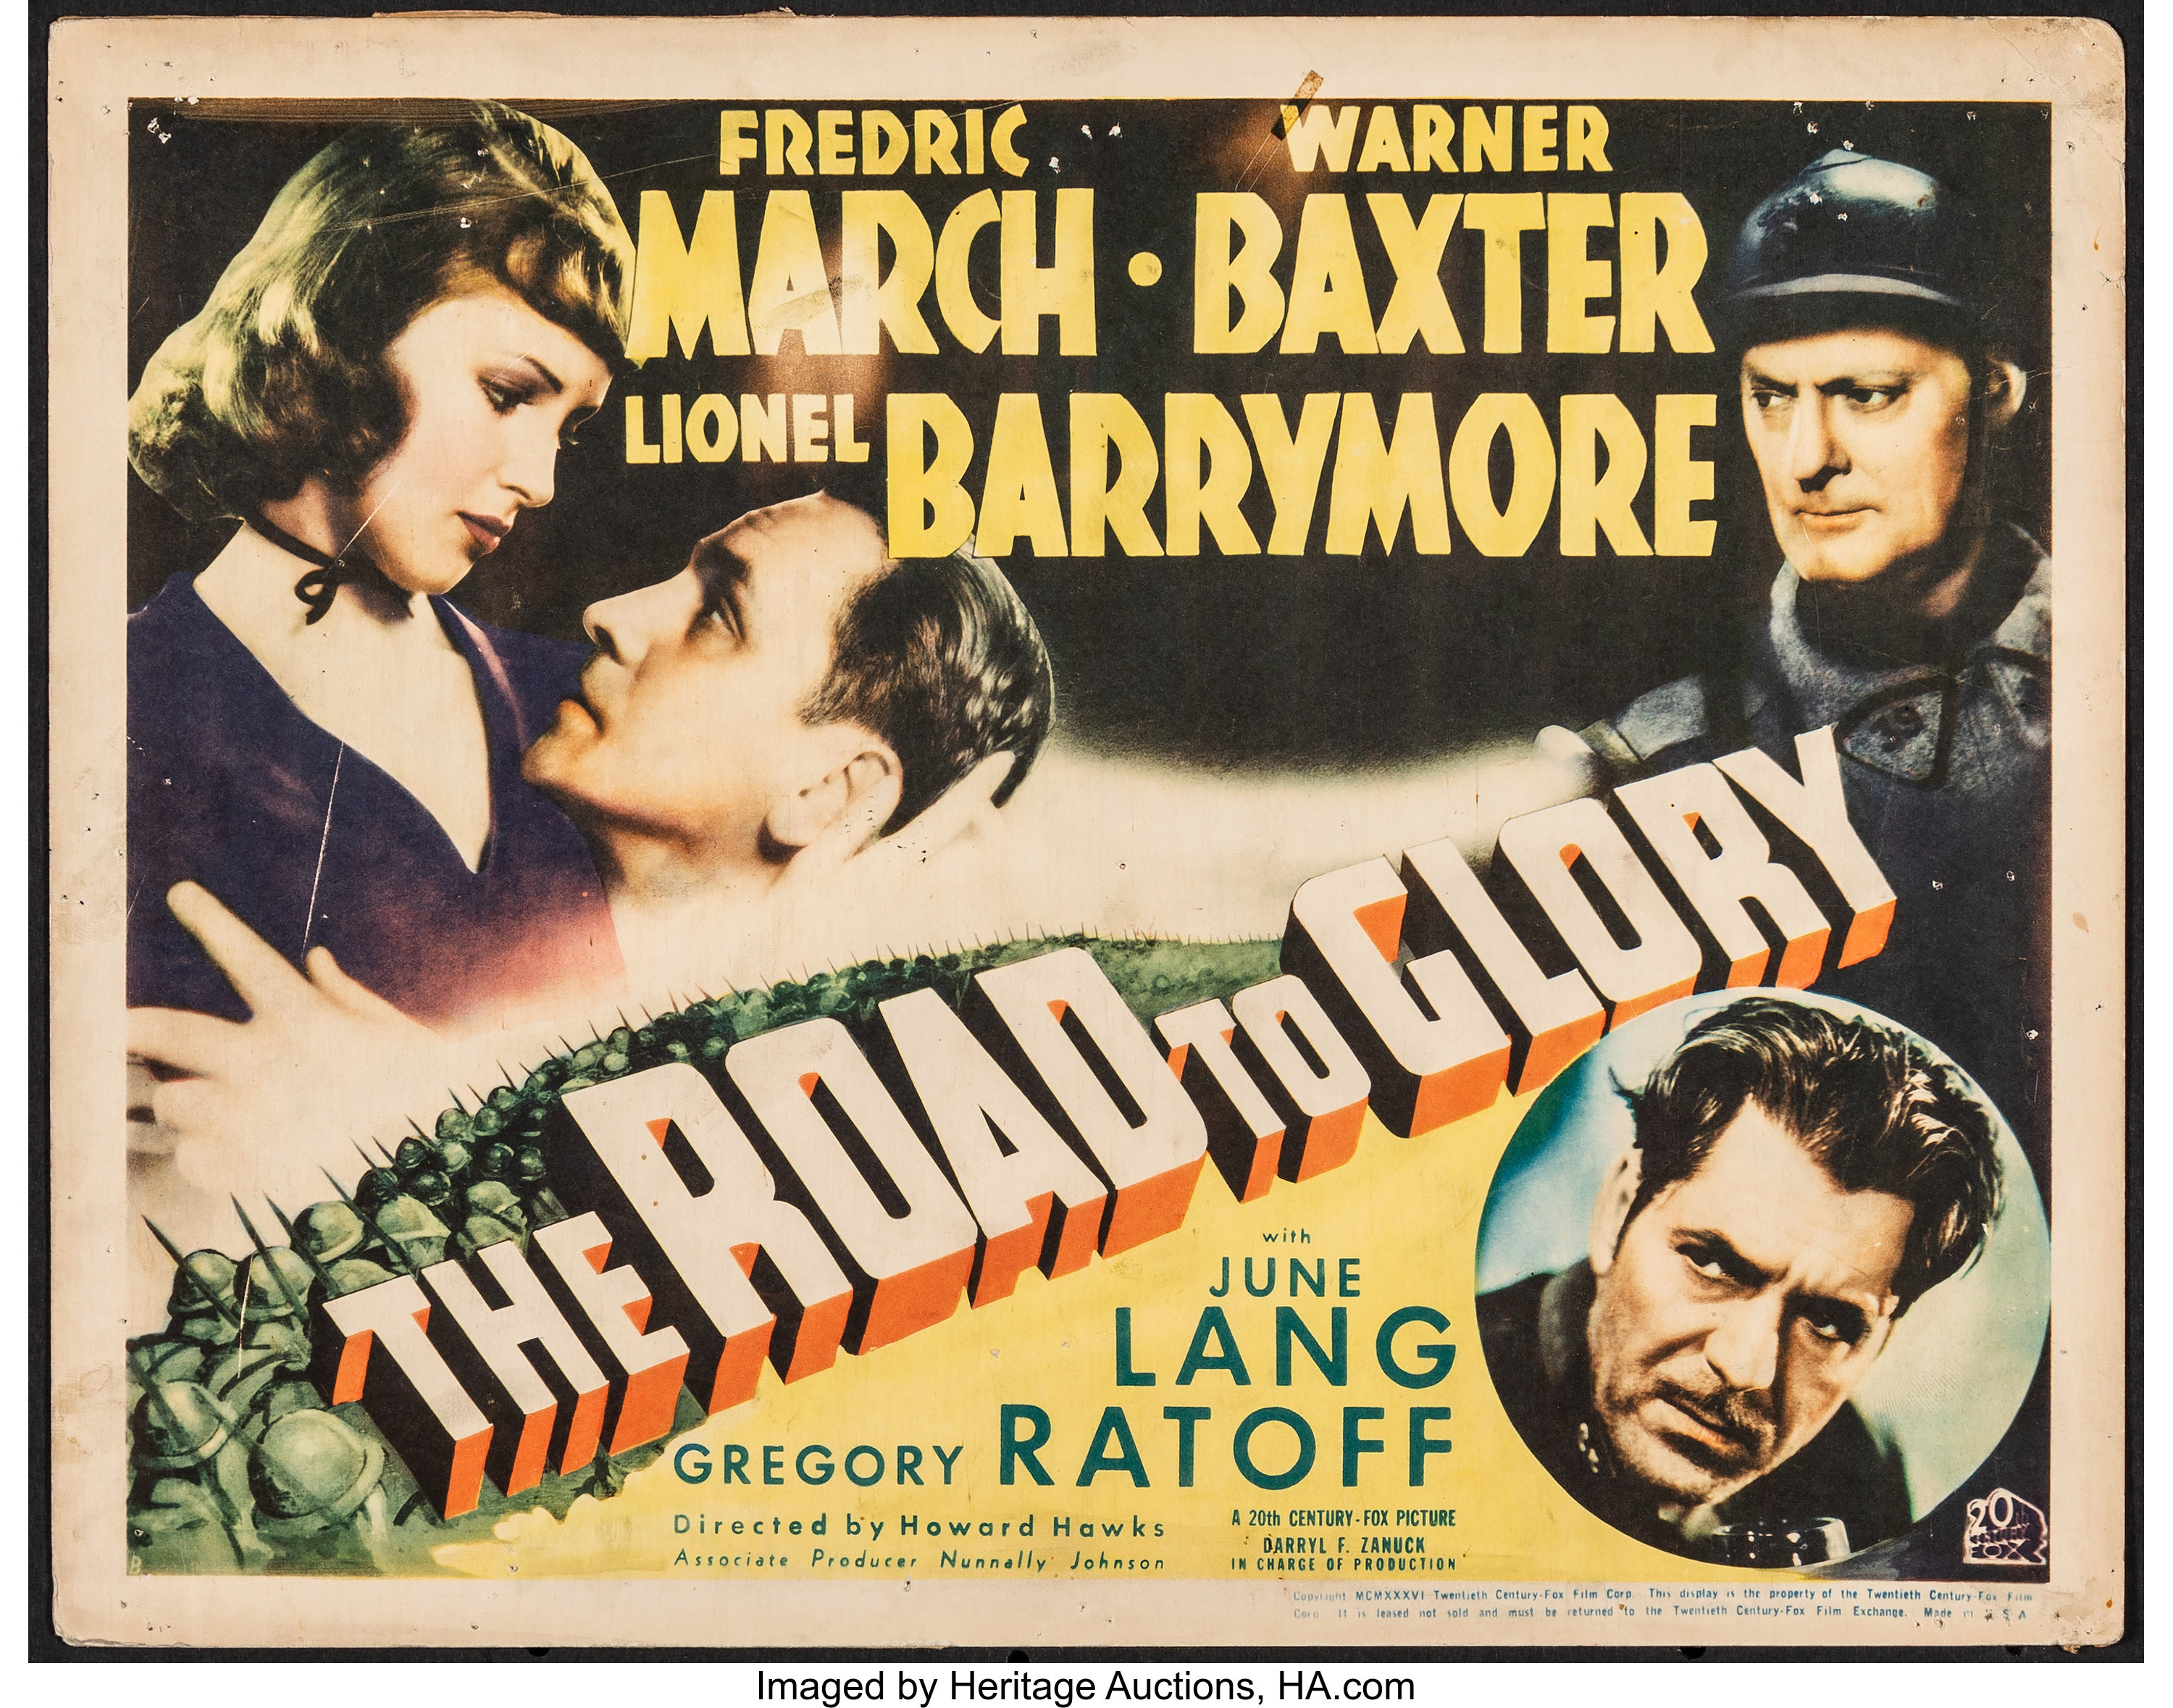 War Movie - The Road to Glory (1936)